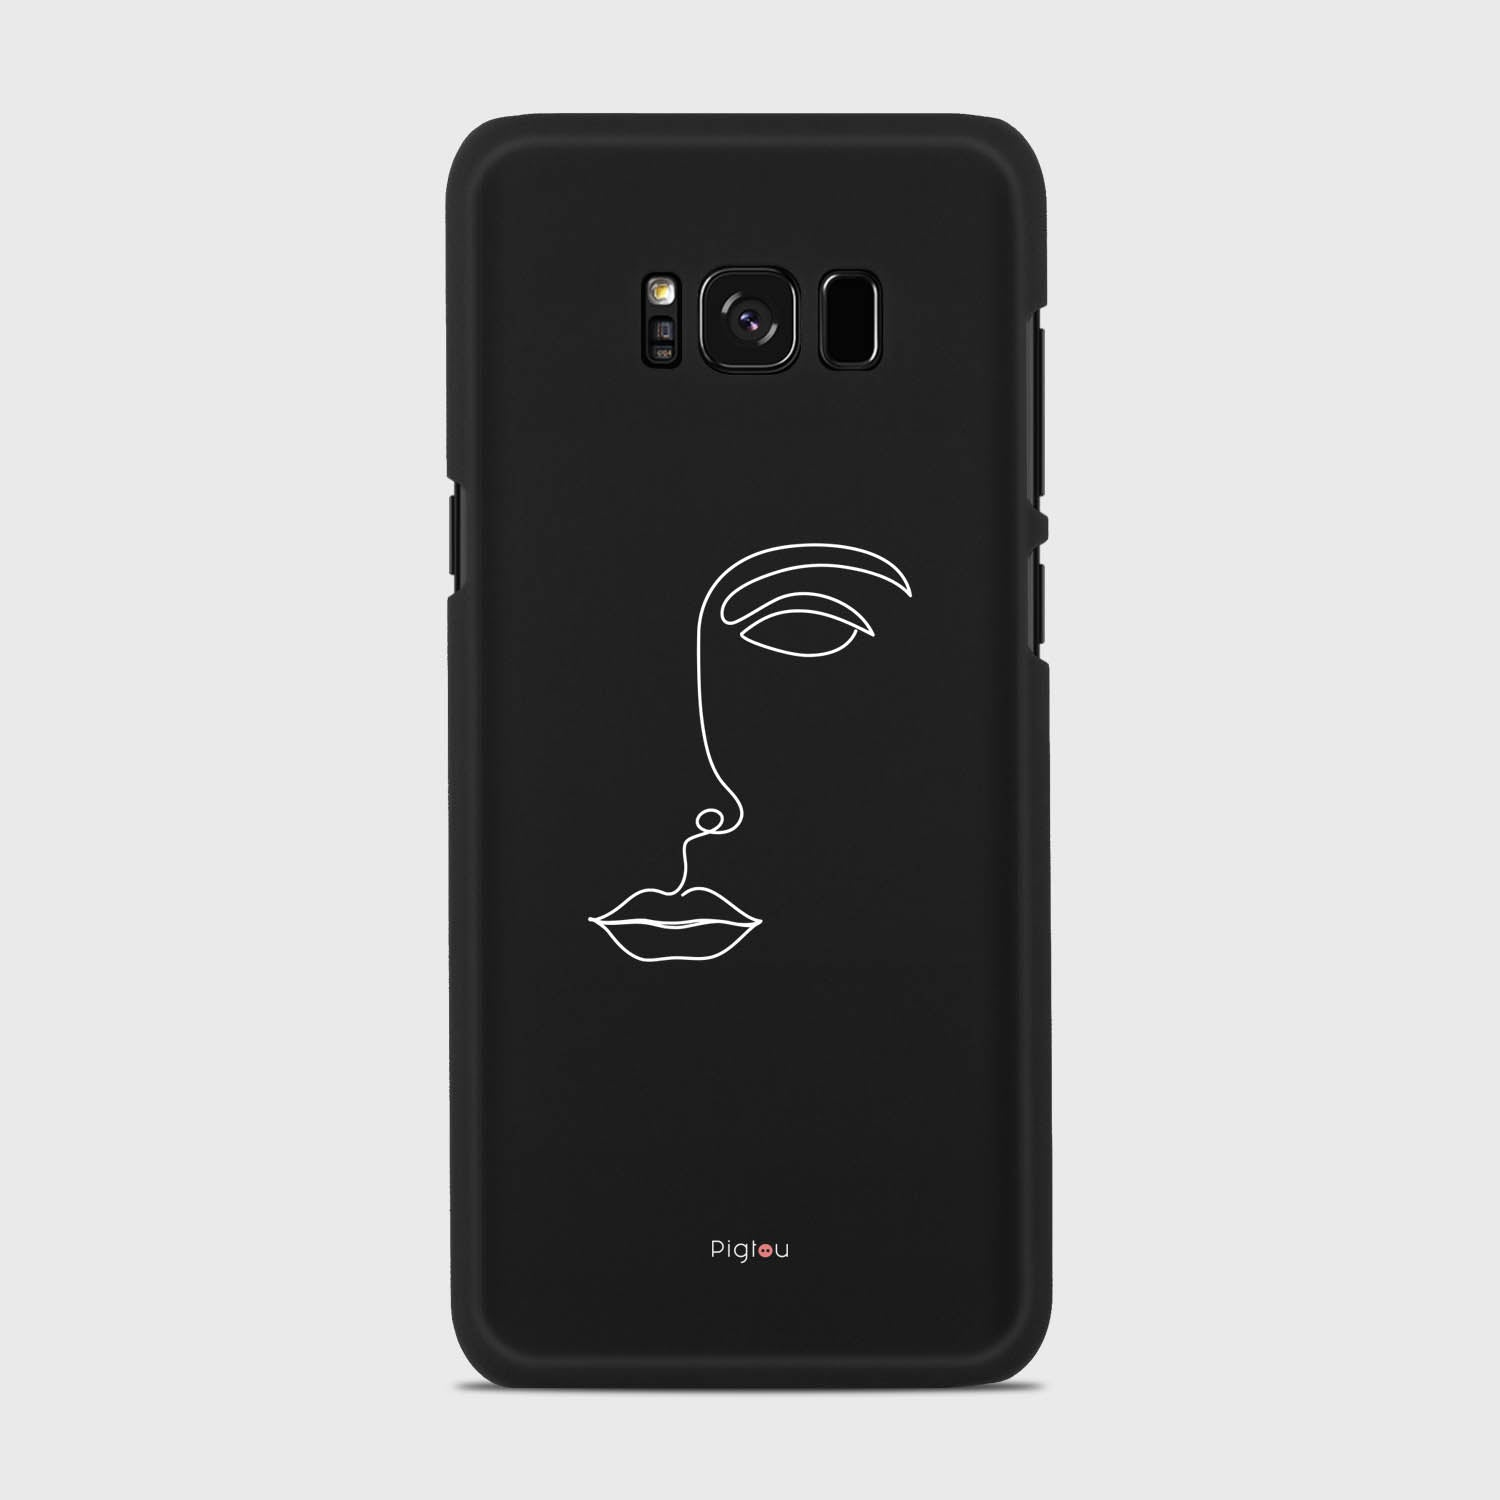 SILHOUETTE FACE Samsung Galaxy S8 cases | Pigtou